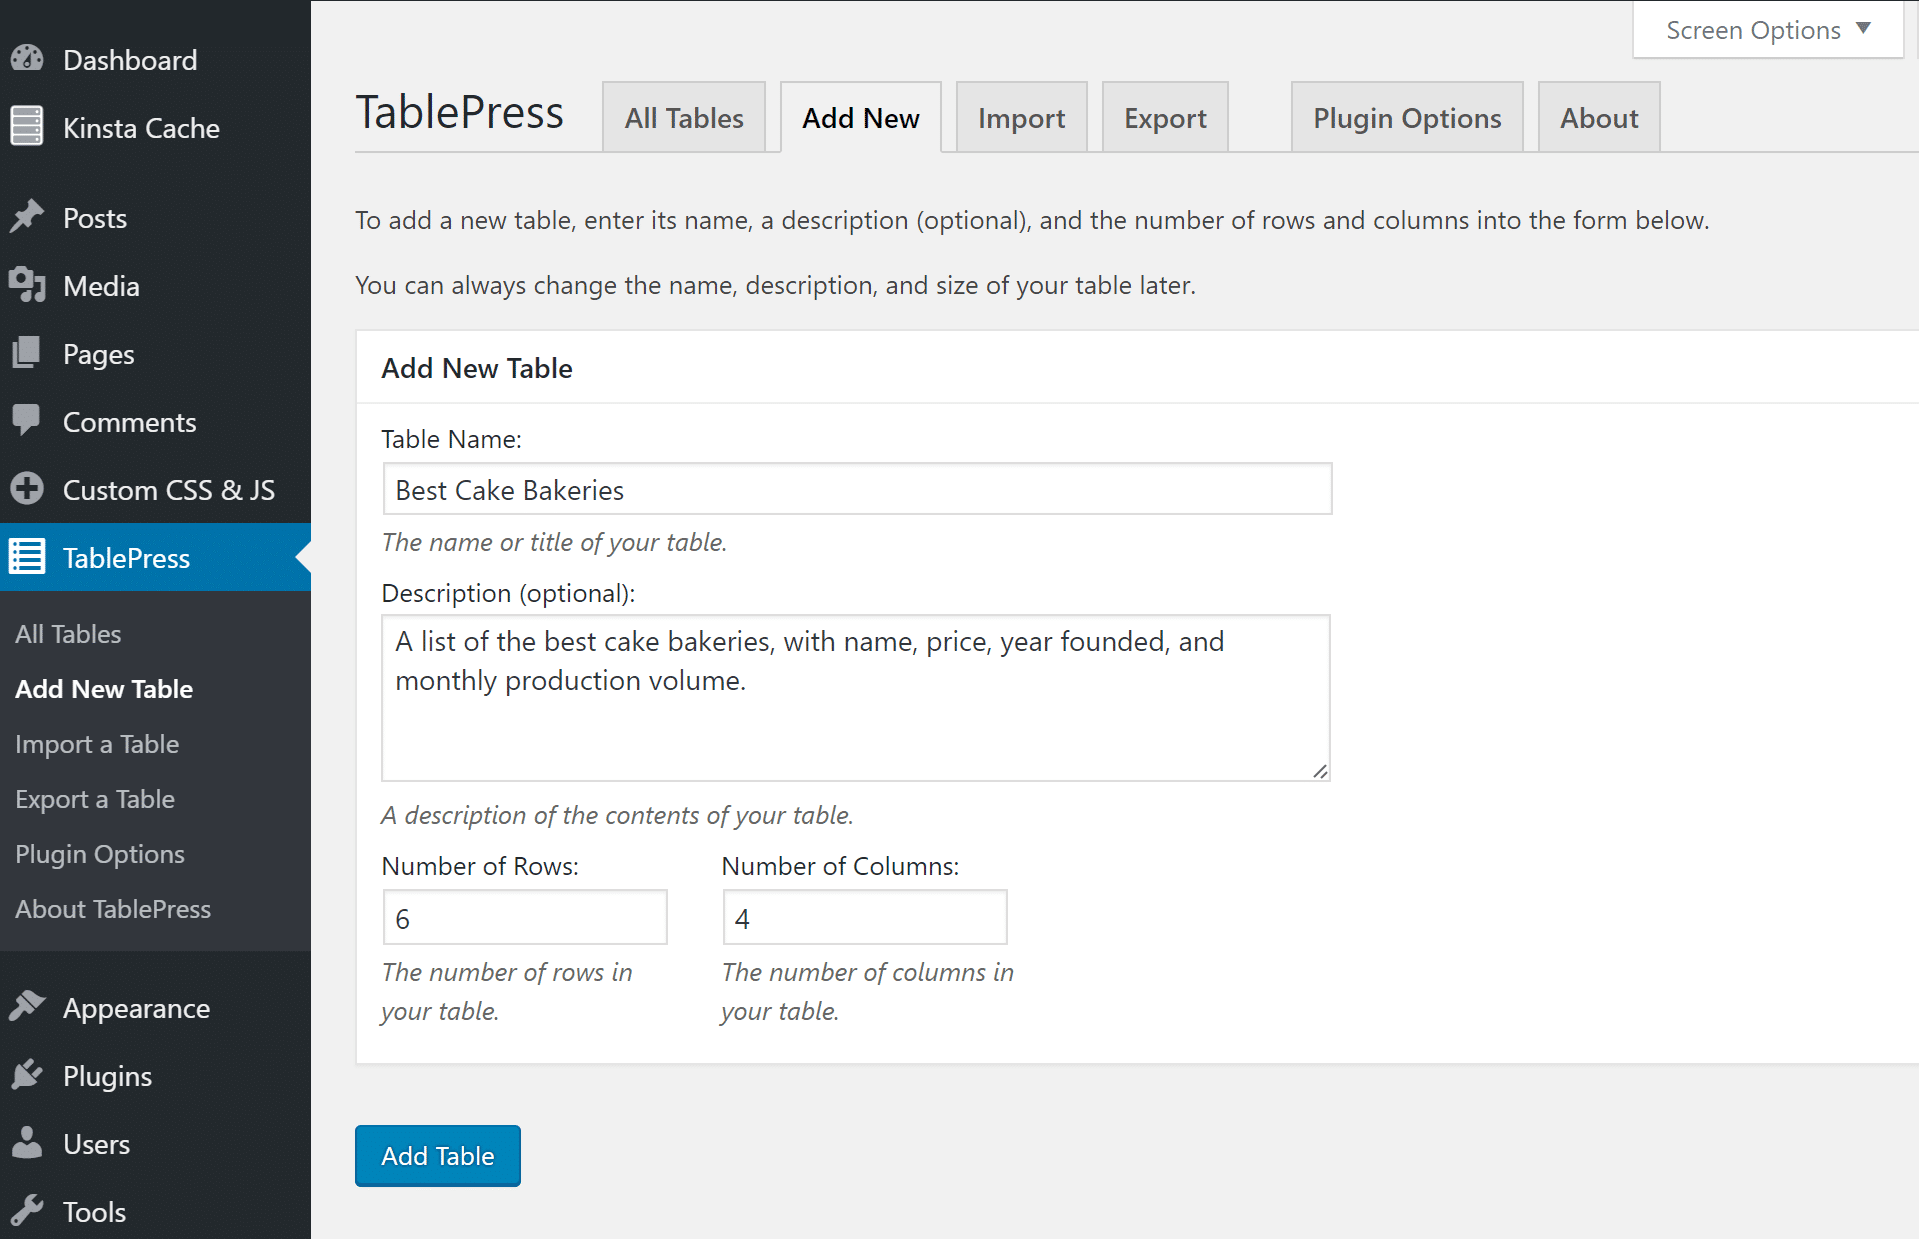 Add new table in TablePress